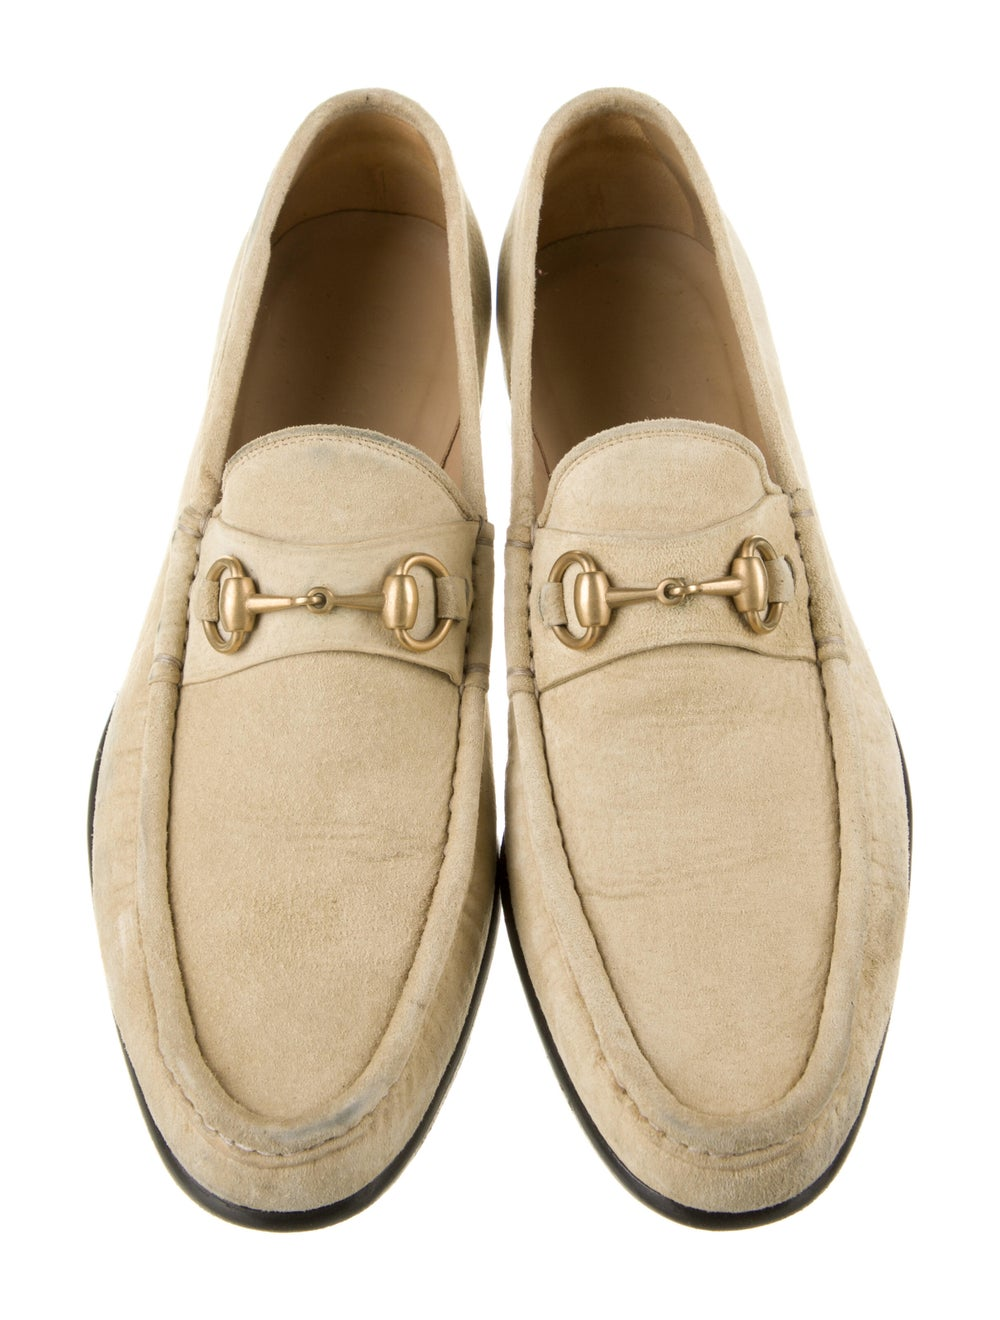 Gucci Horsebit Accent Suede Dress Loafers - image 3